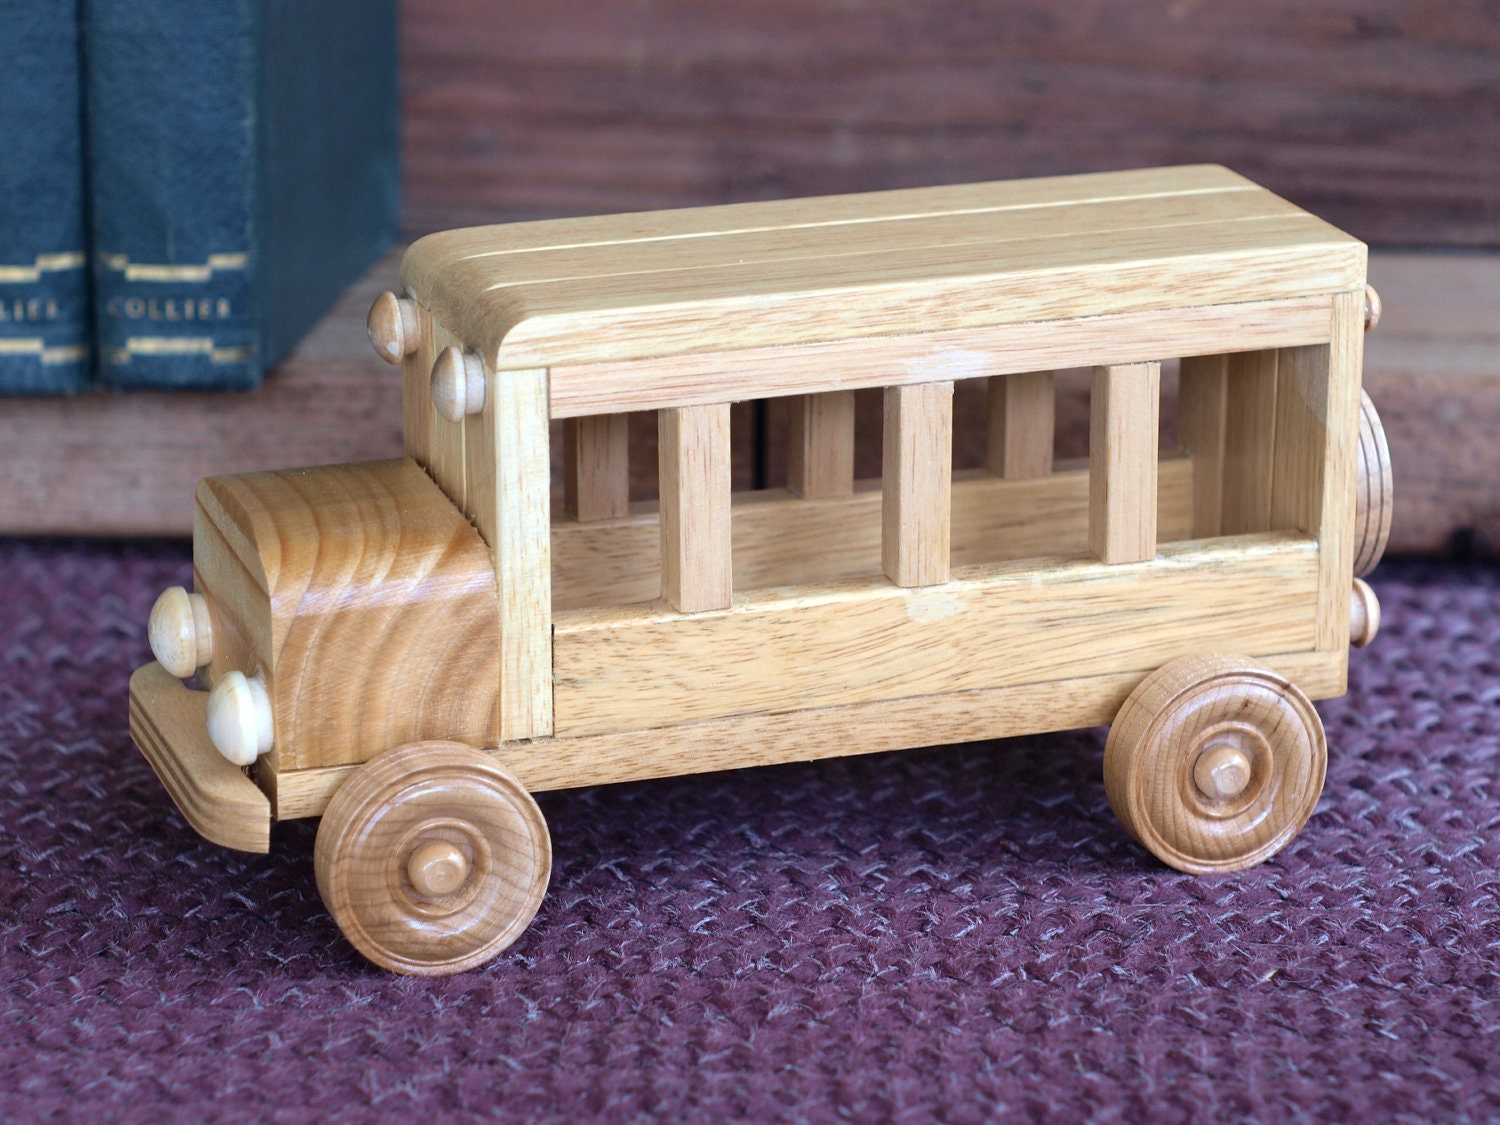 Wooden Toys For Boys : Reclaimed wooden toy bus for children kids boys by